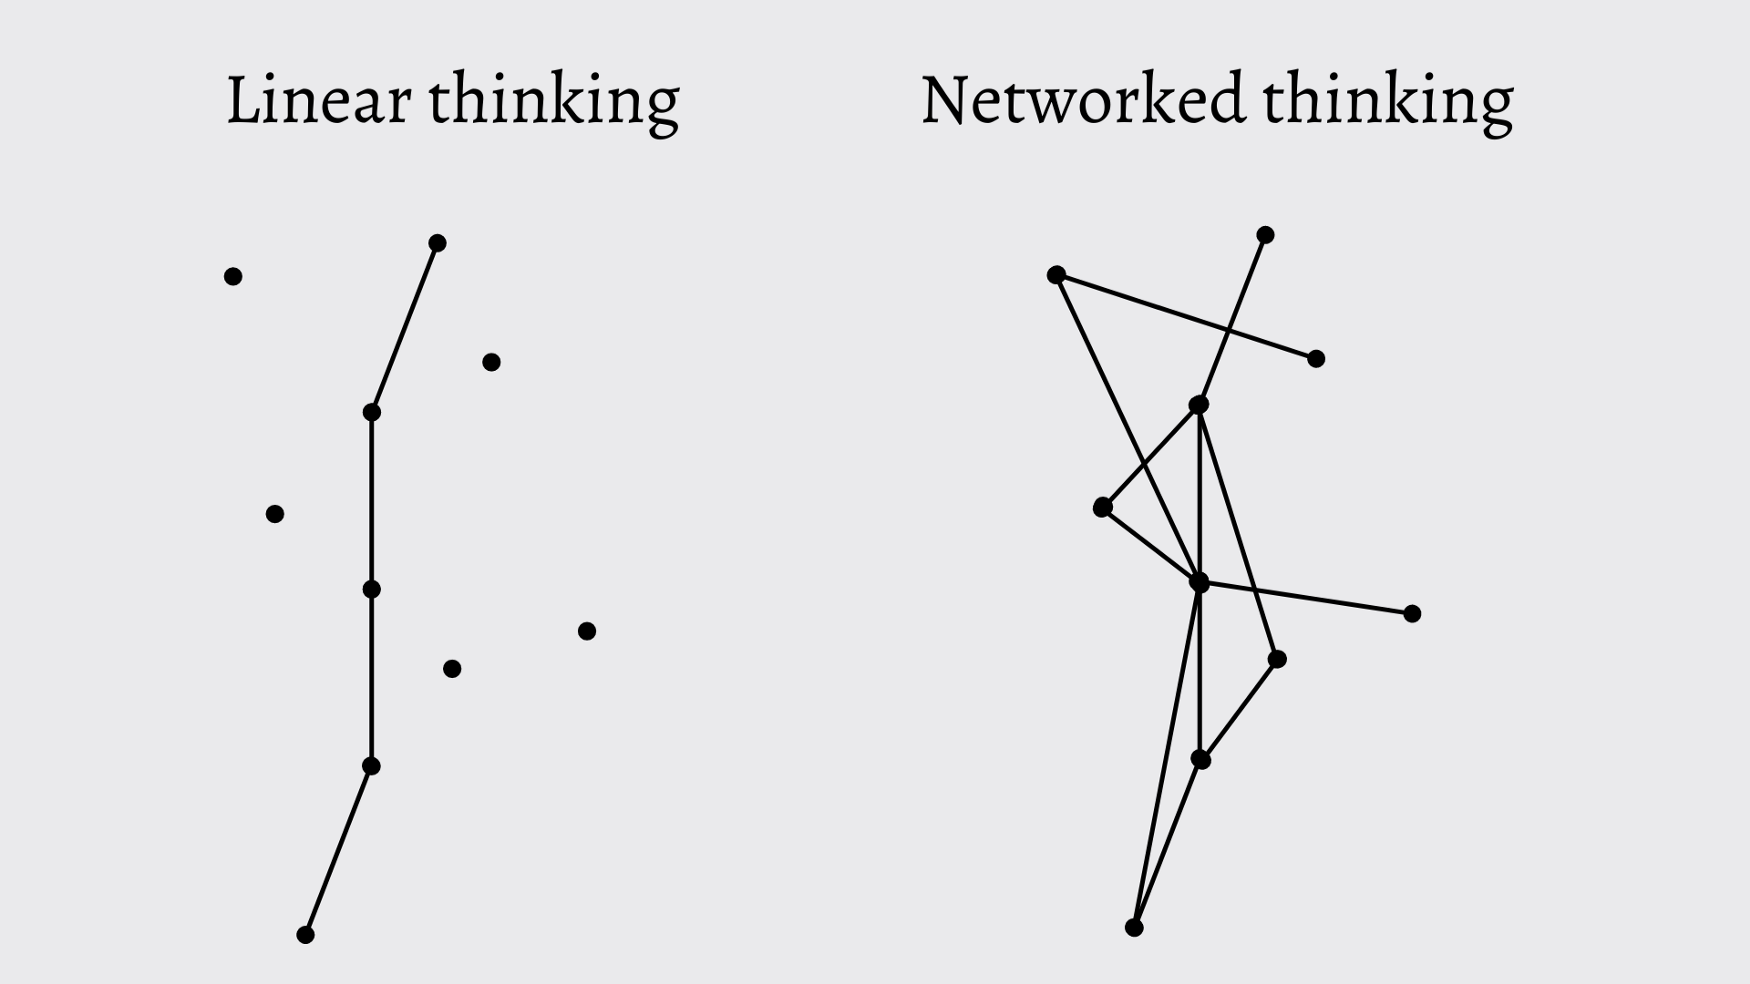 Illustration shows linear thinking and networked thinking. Networked thinking includes interactions and relationships between thoughts.